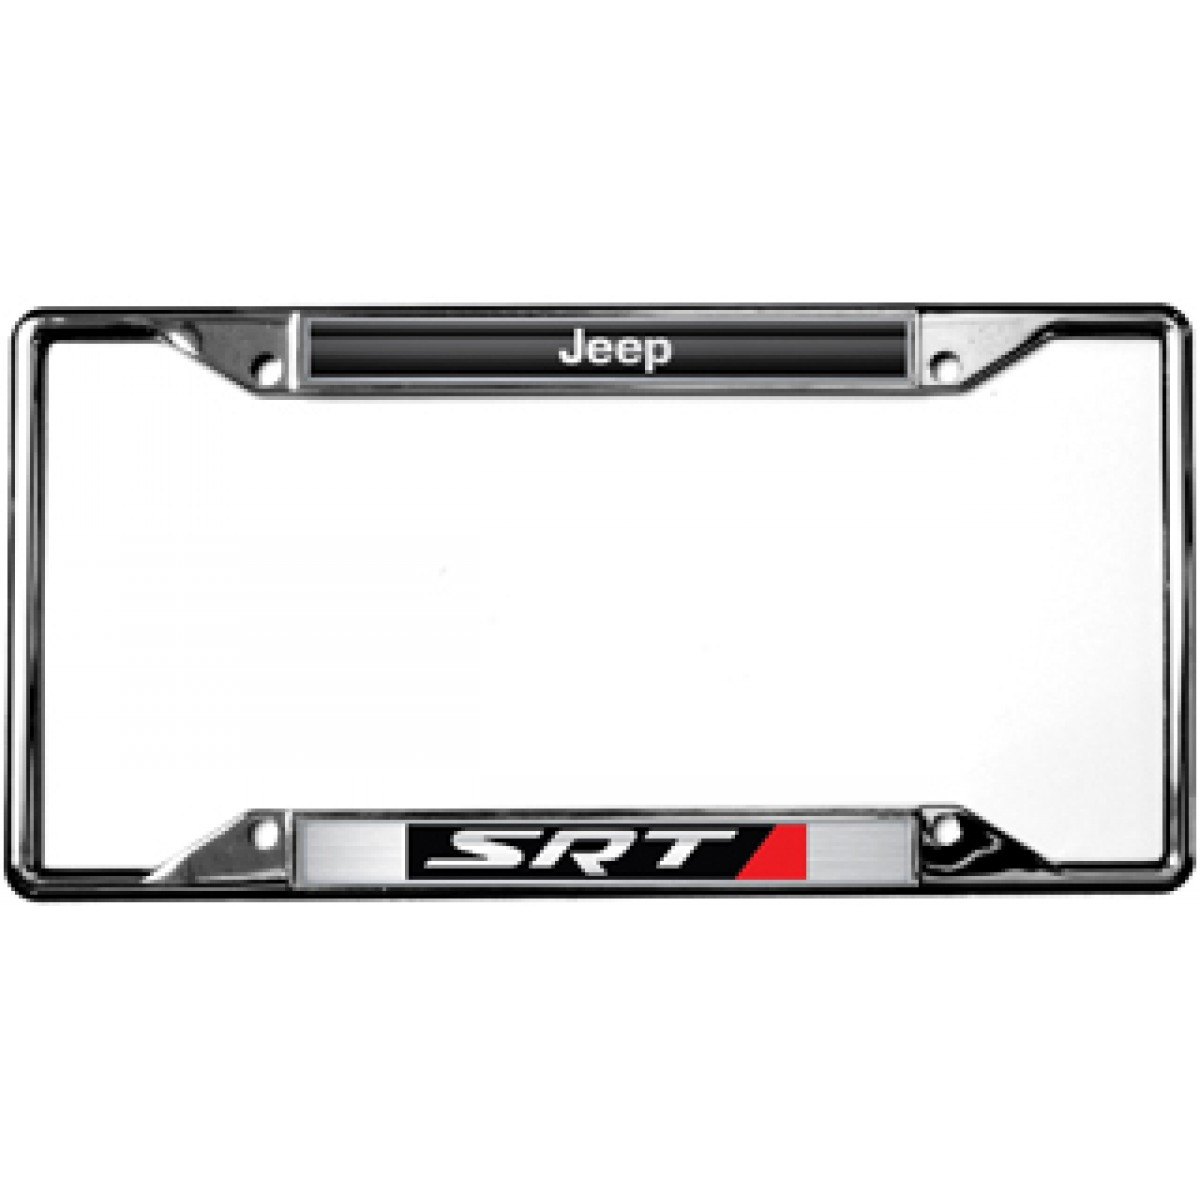 jeep srt license plate frame hot rod accessories. Cars Review. Best American Auto & Cars Review